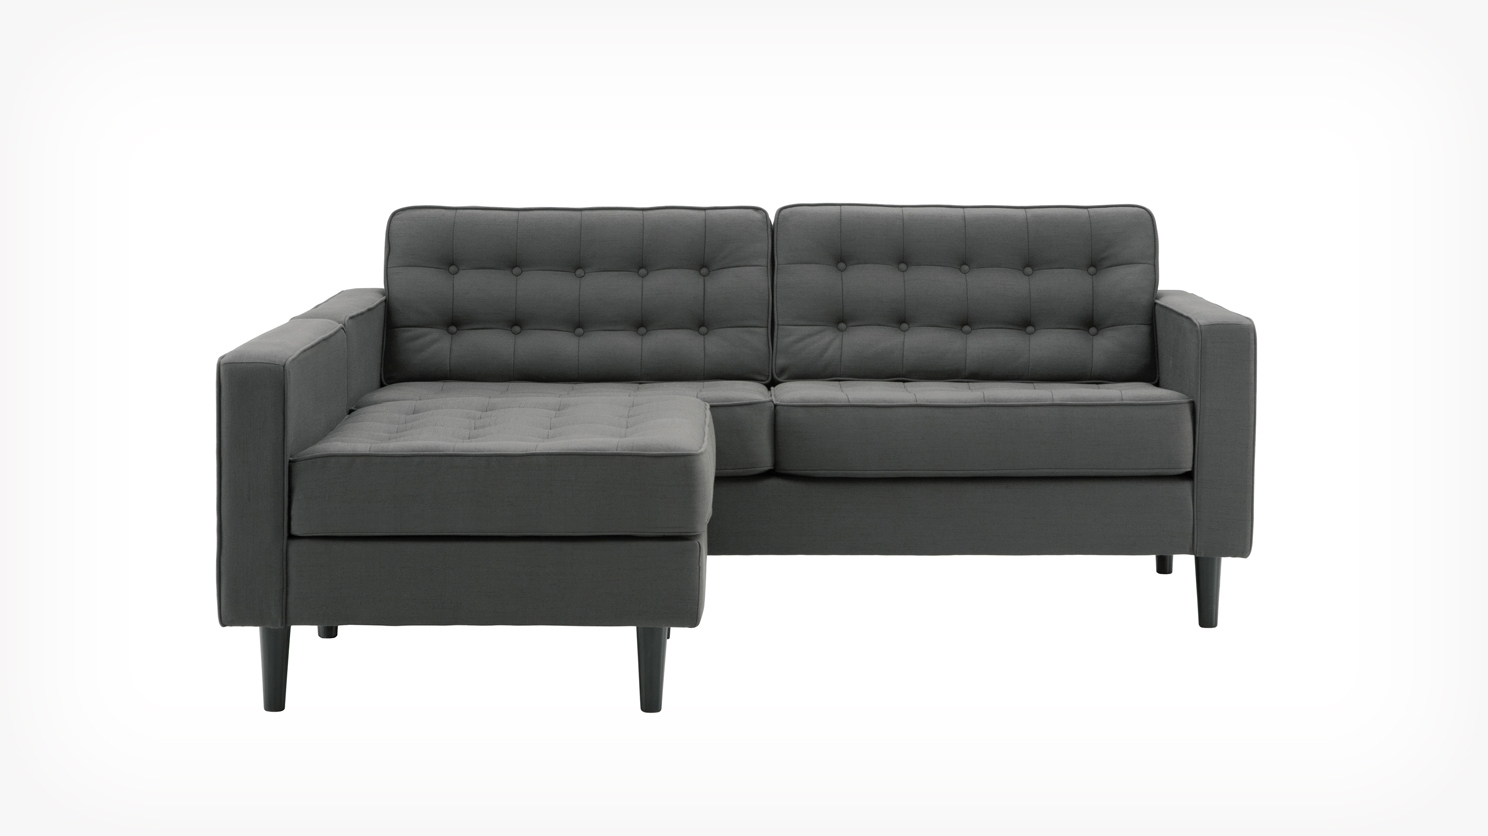 Fashionable Sectional Sofas That Come In Pieces In Eq (View 13 of 15)